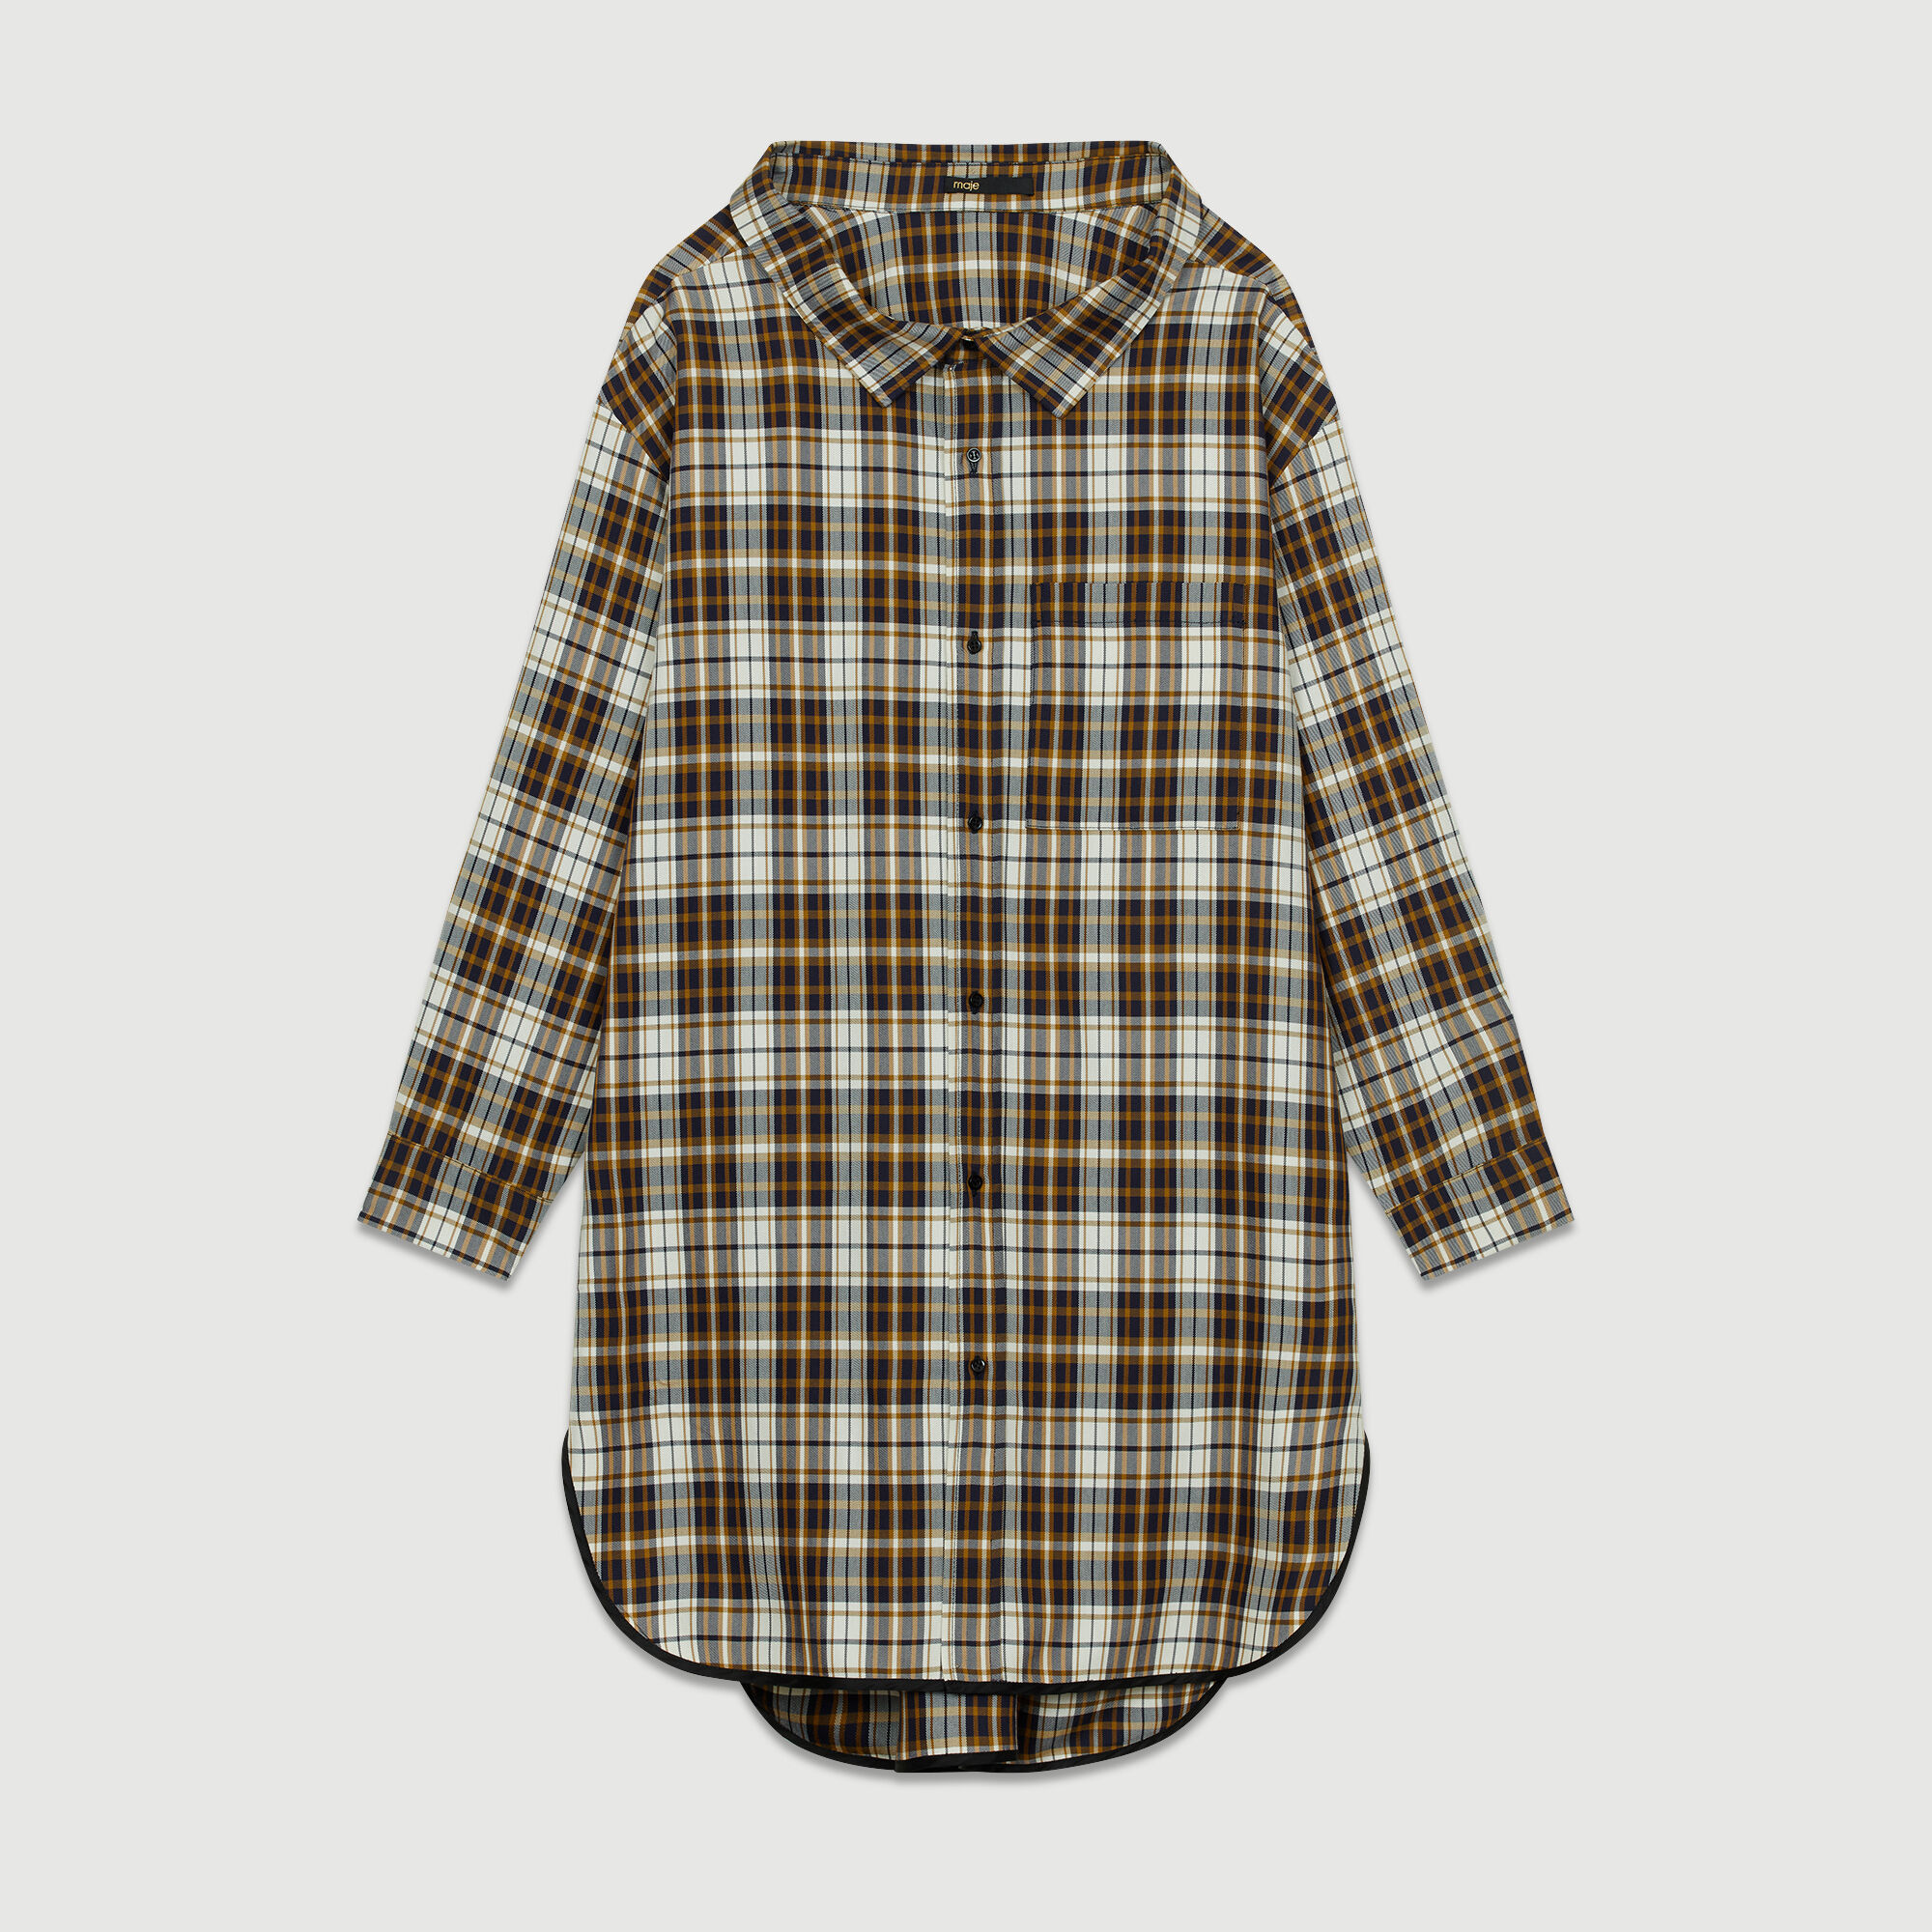 À Romel Robes Robe Paris Maje Chemise Carreaux RqqHw1E